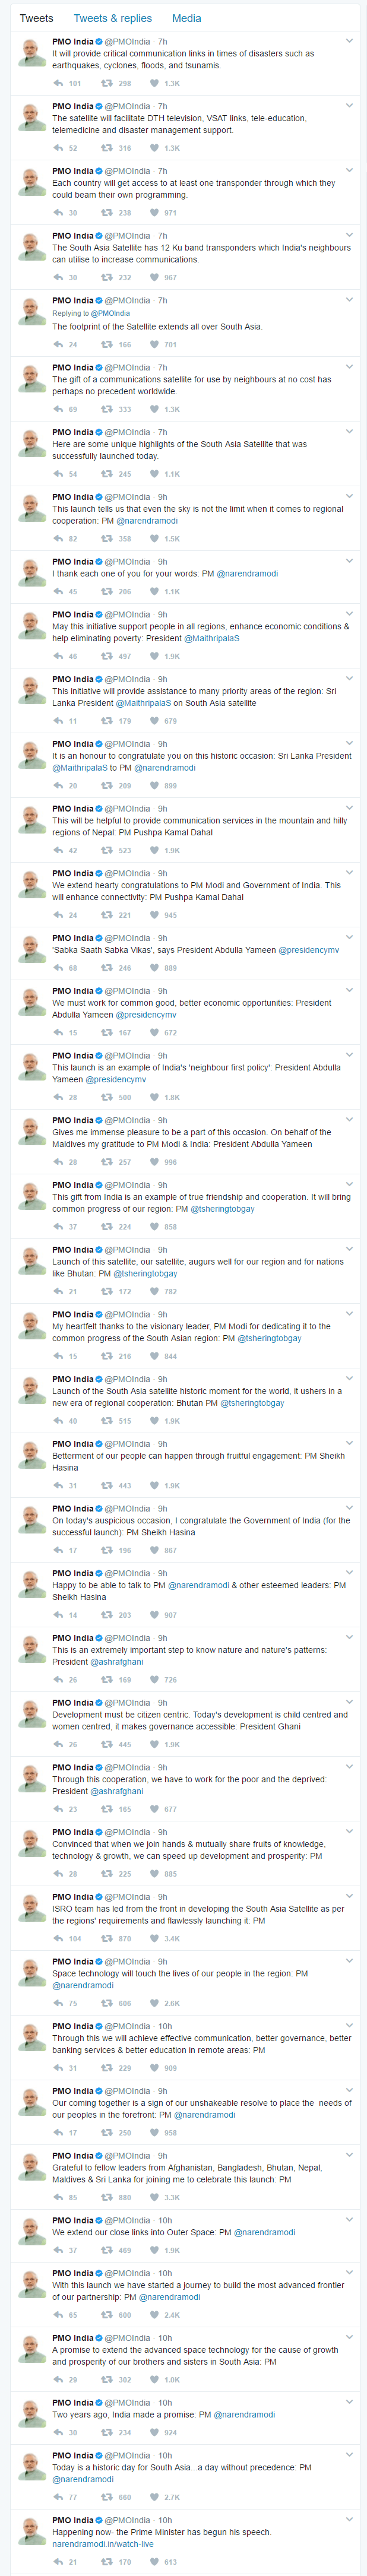 Tweets from PMO